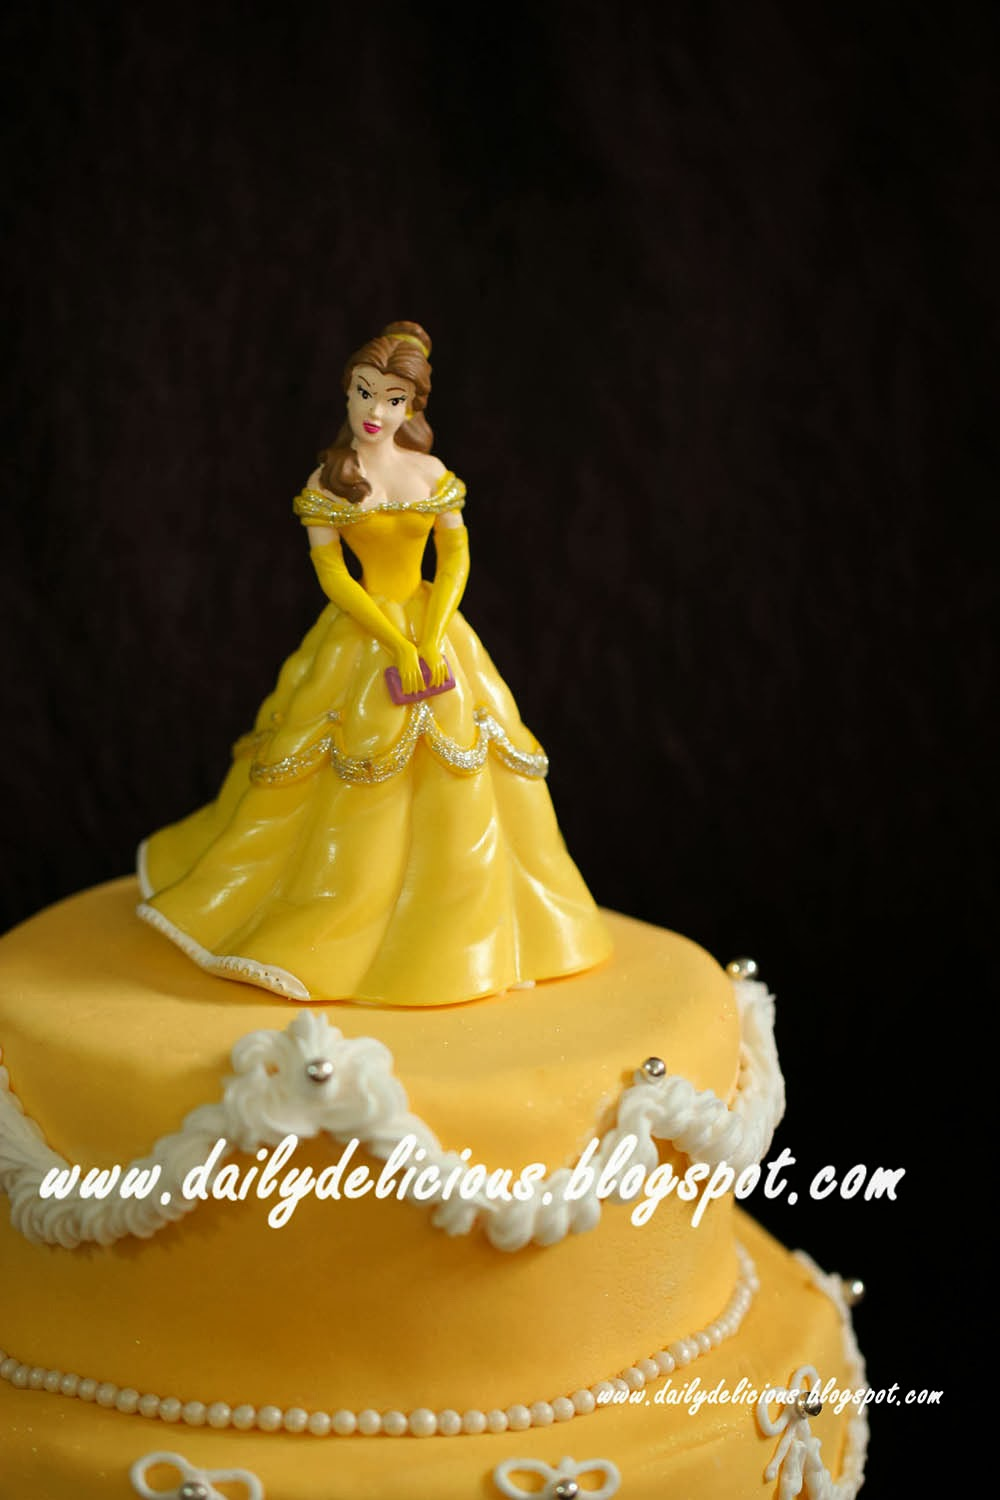 Chocolate cake with icing vol 6 - 3 4